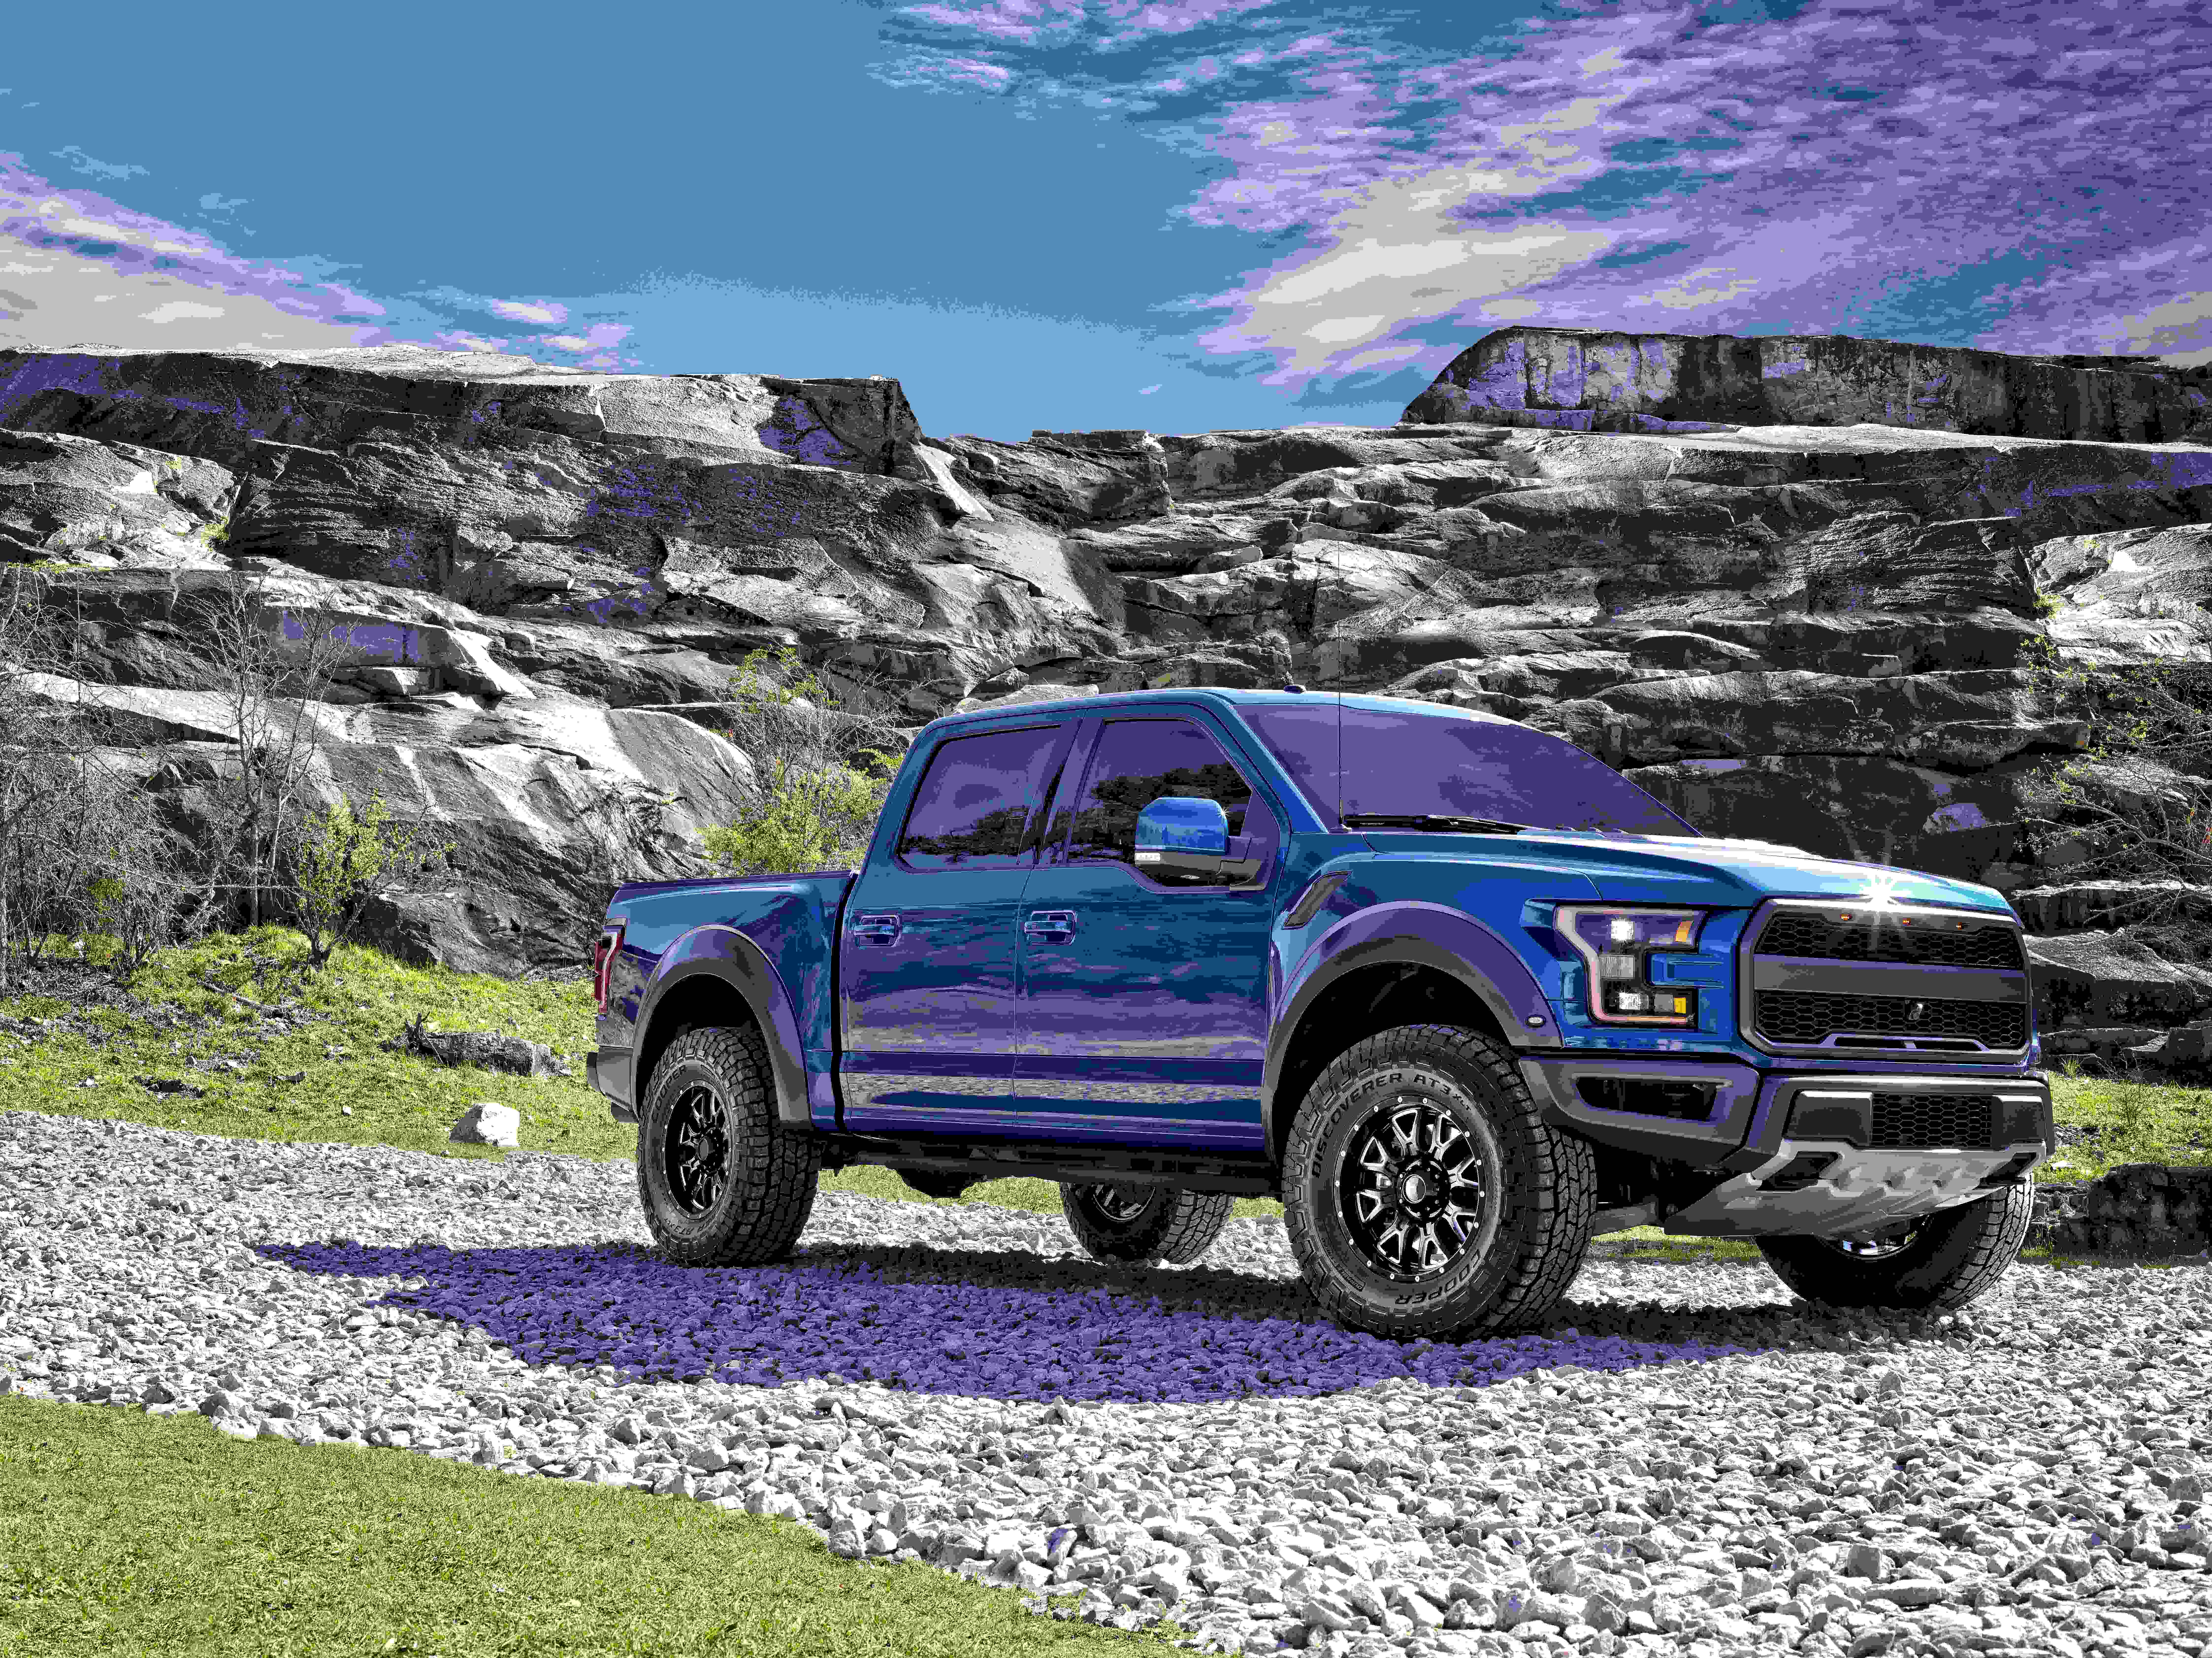 Best Tires For F150 >> Cooper introduces two new pickup tires | Medium Duty Work ...